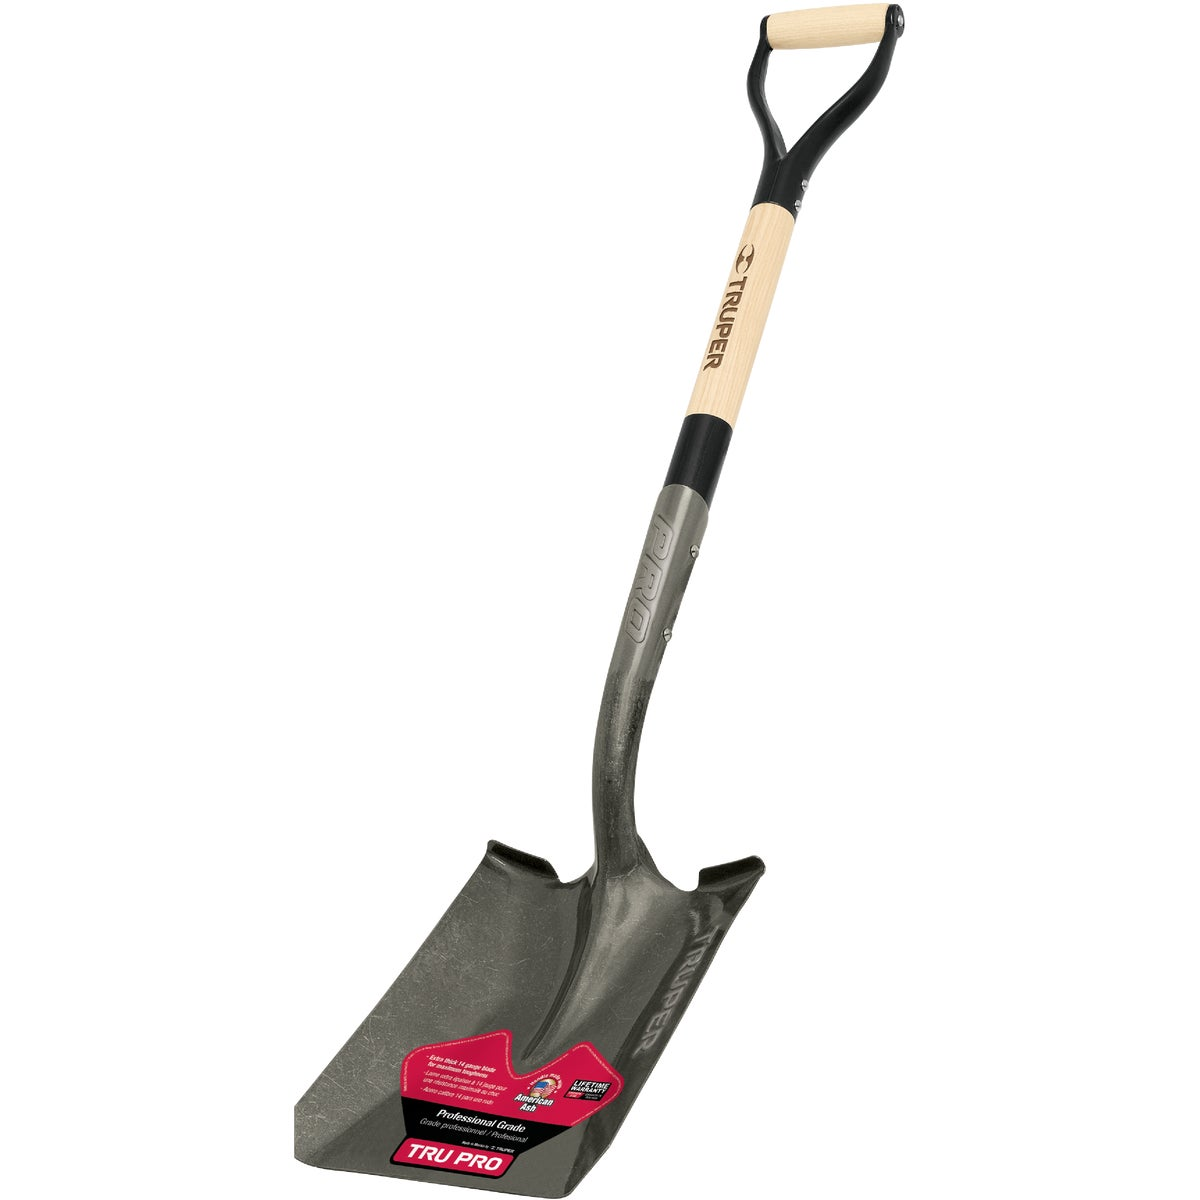 D-HDL SQ PT SHOVEL - 1309300 by Ames True Temper